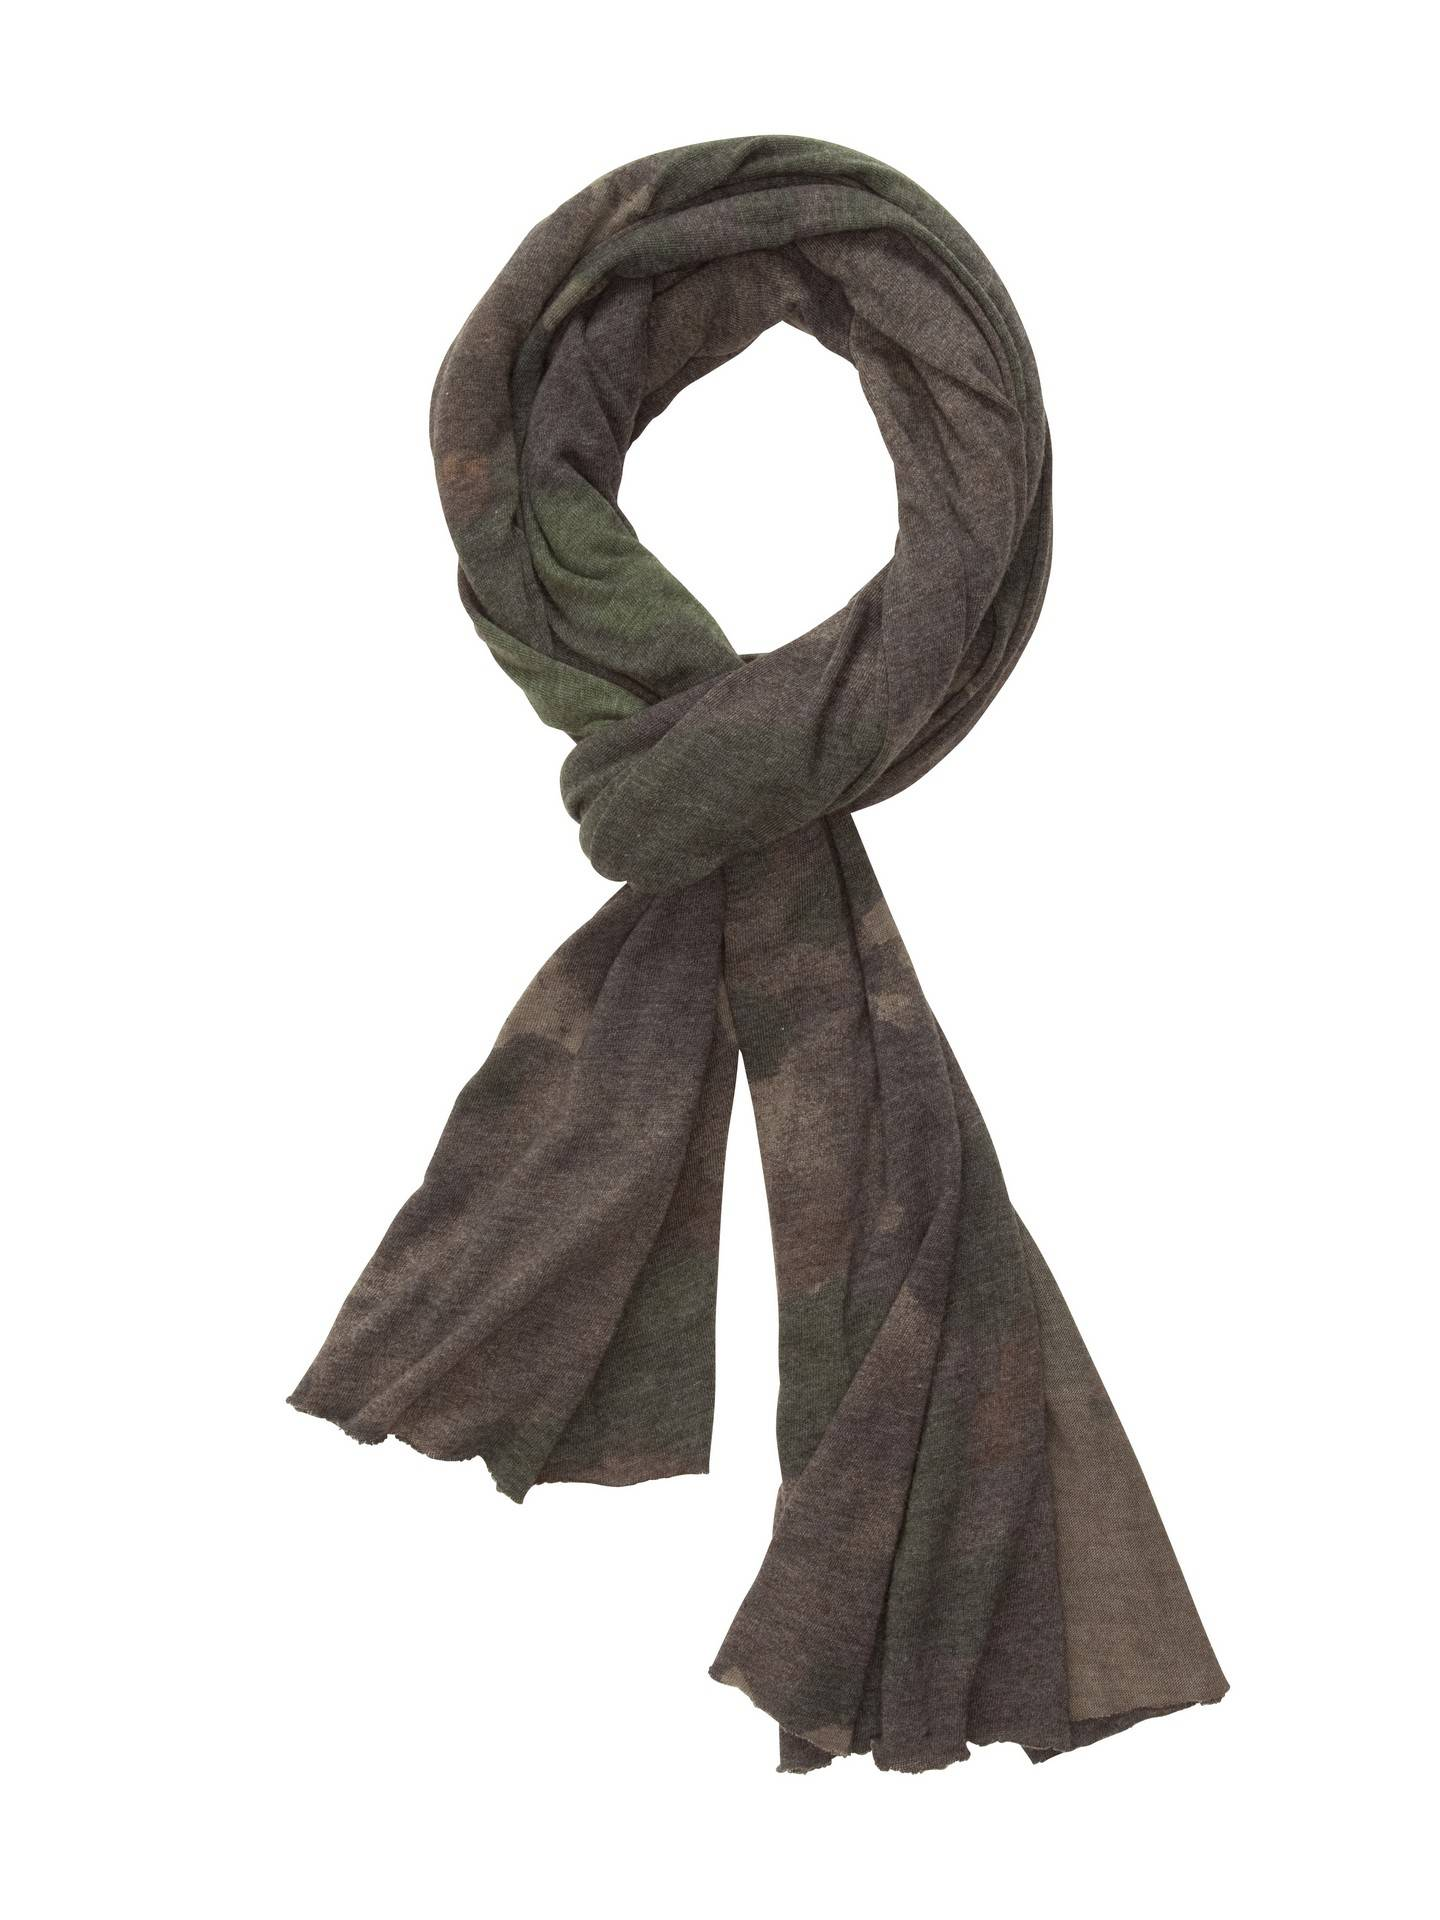 Alternative Apparel Printed Oversized Bundle Up Scarf - Camouflage Dreamstate - Size: OS